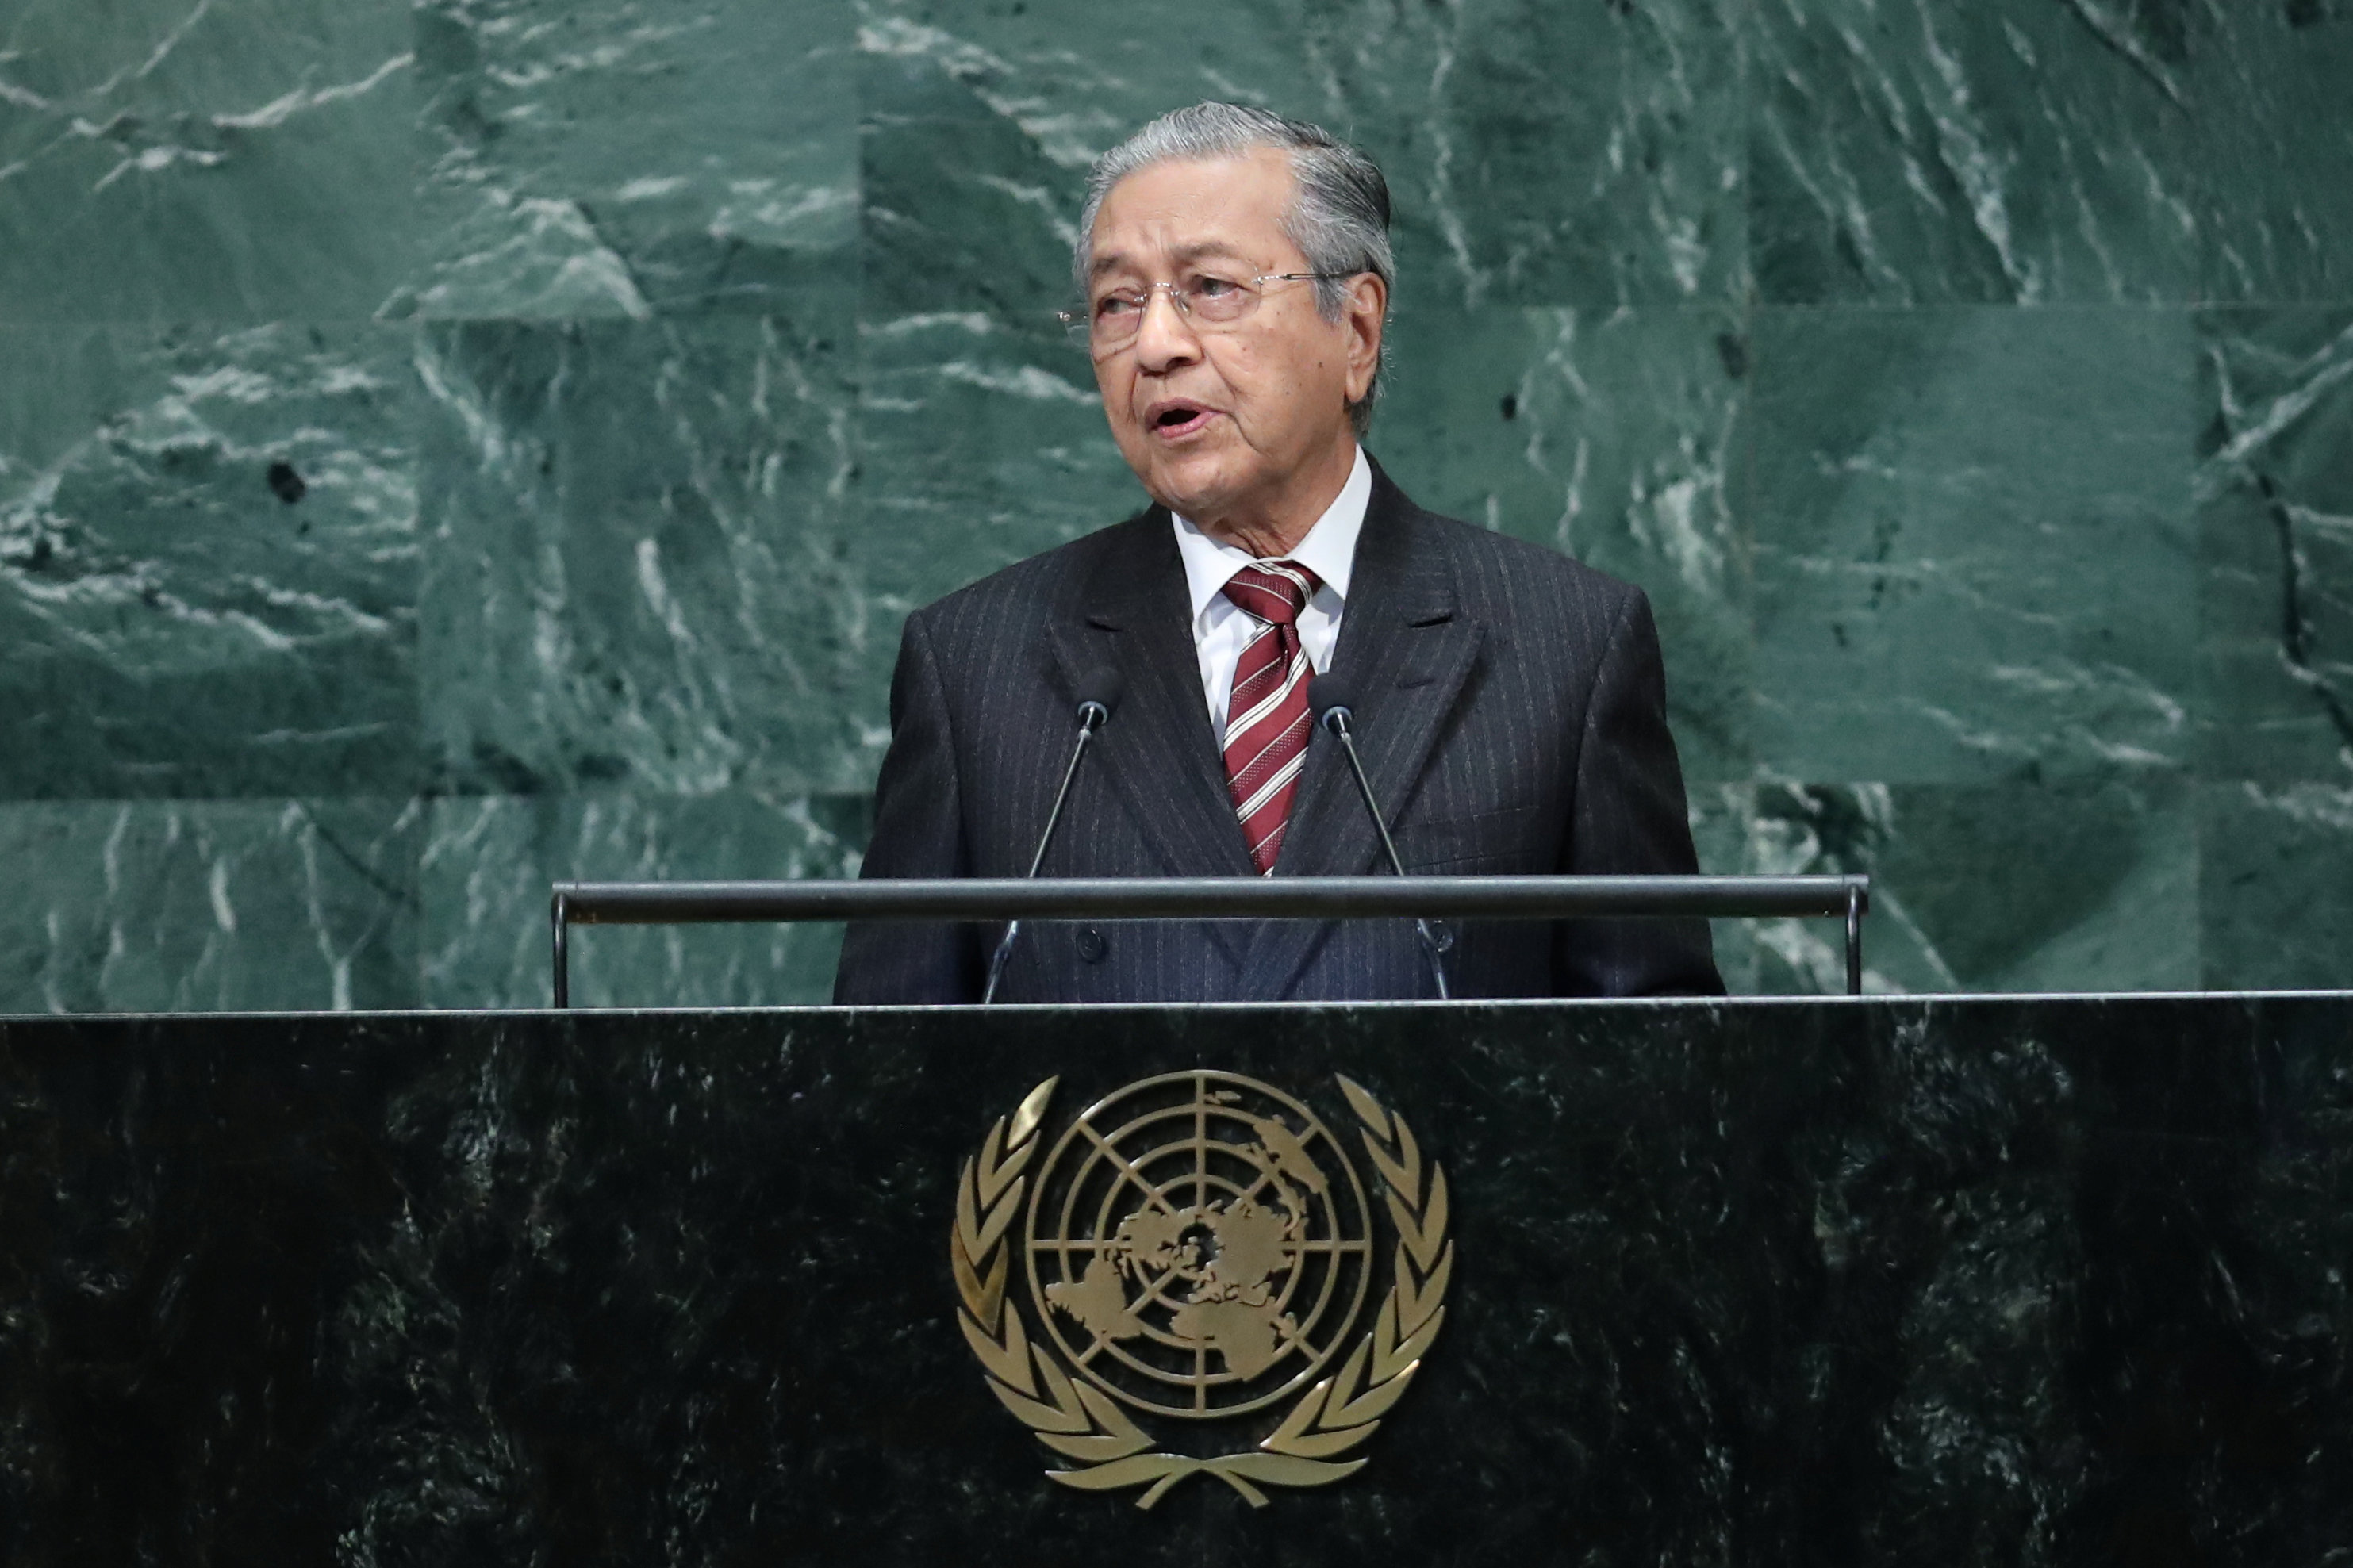 Prime Minister of Malaysia Mahathir bin Mohamad addresses the 73rd session of the United Nations General Assembly at U.N. headquarters in New York, U.S., September 28, 2018. REUTERS/Shannon Stapleton